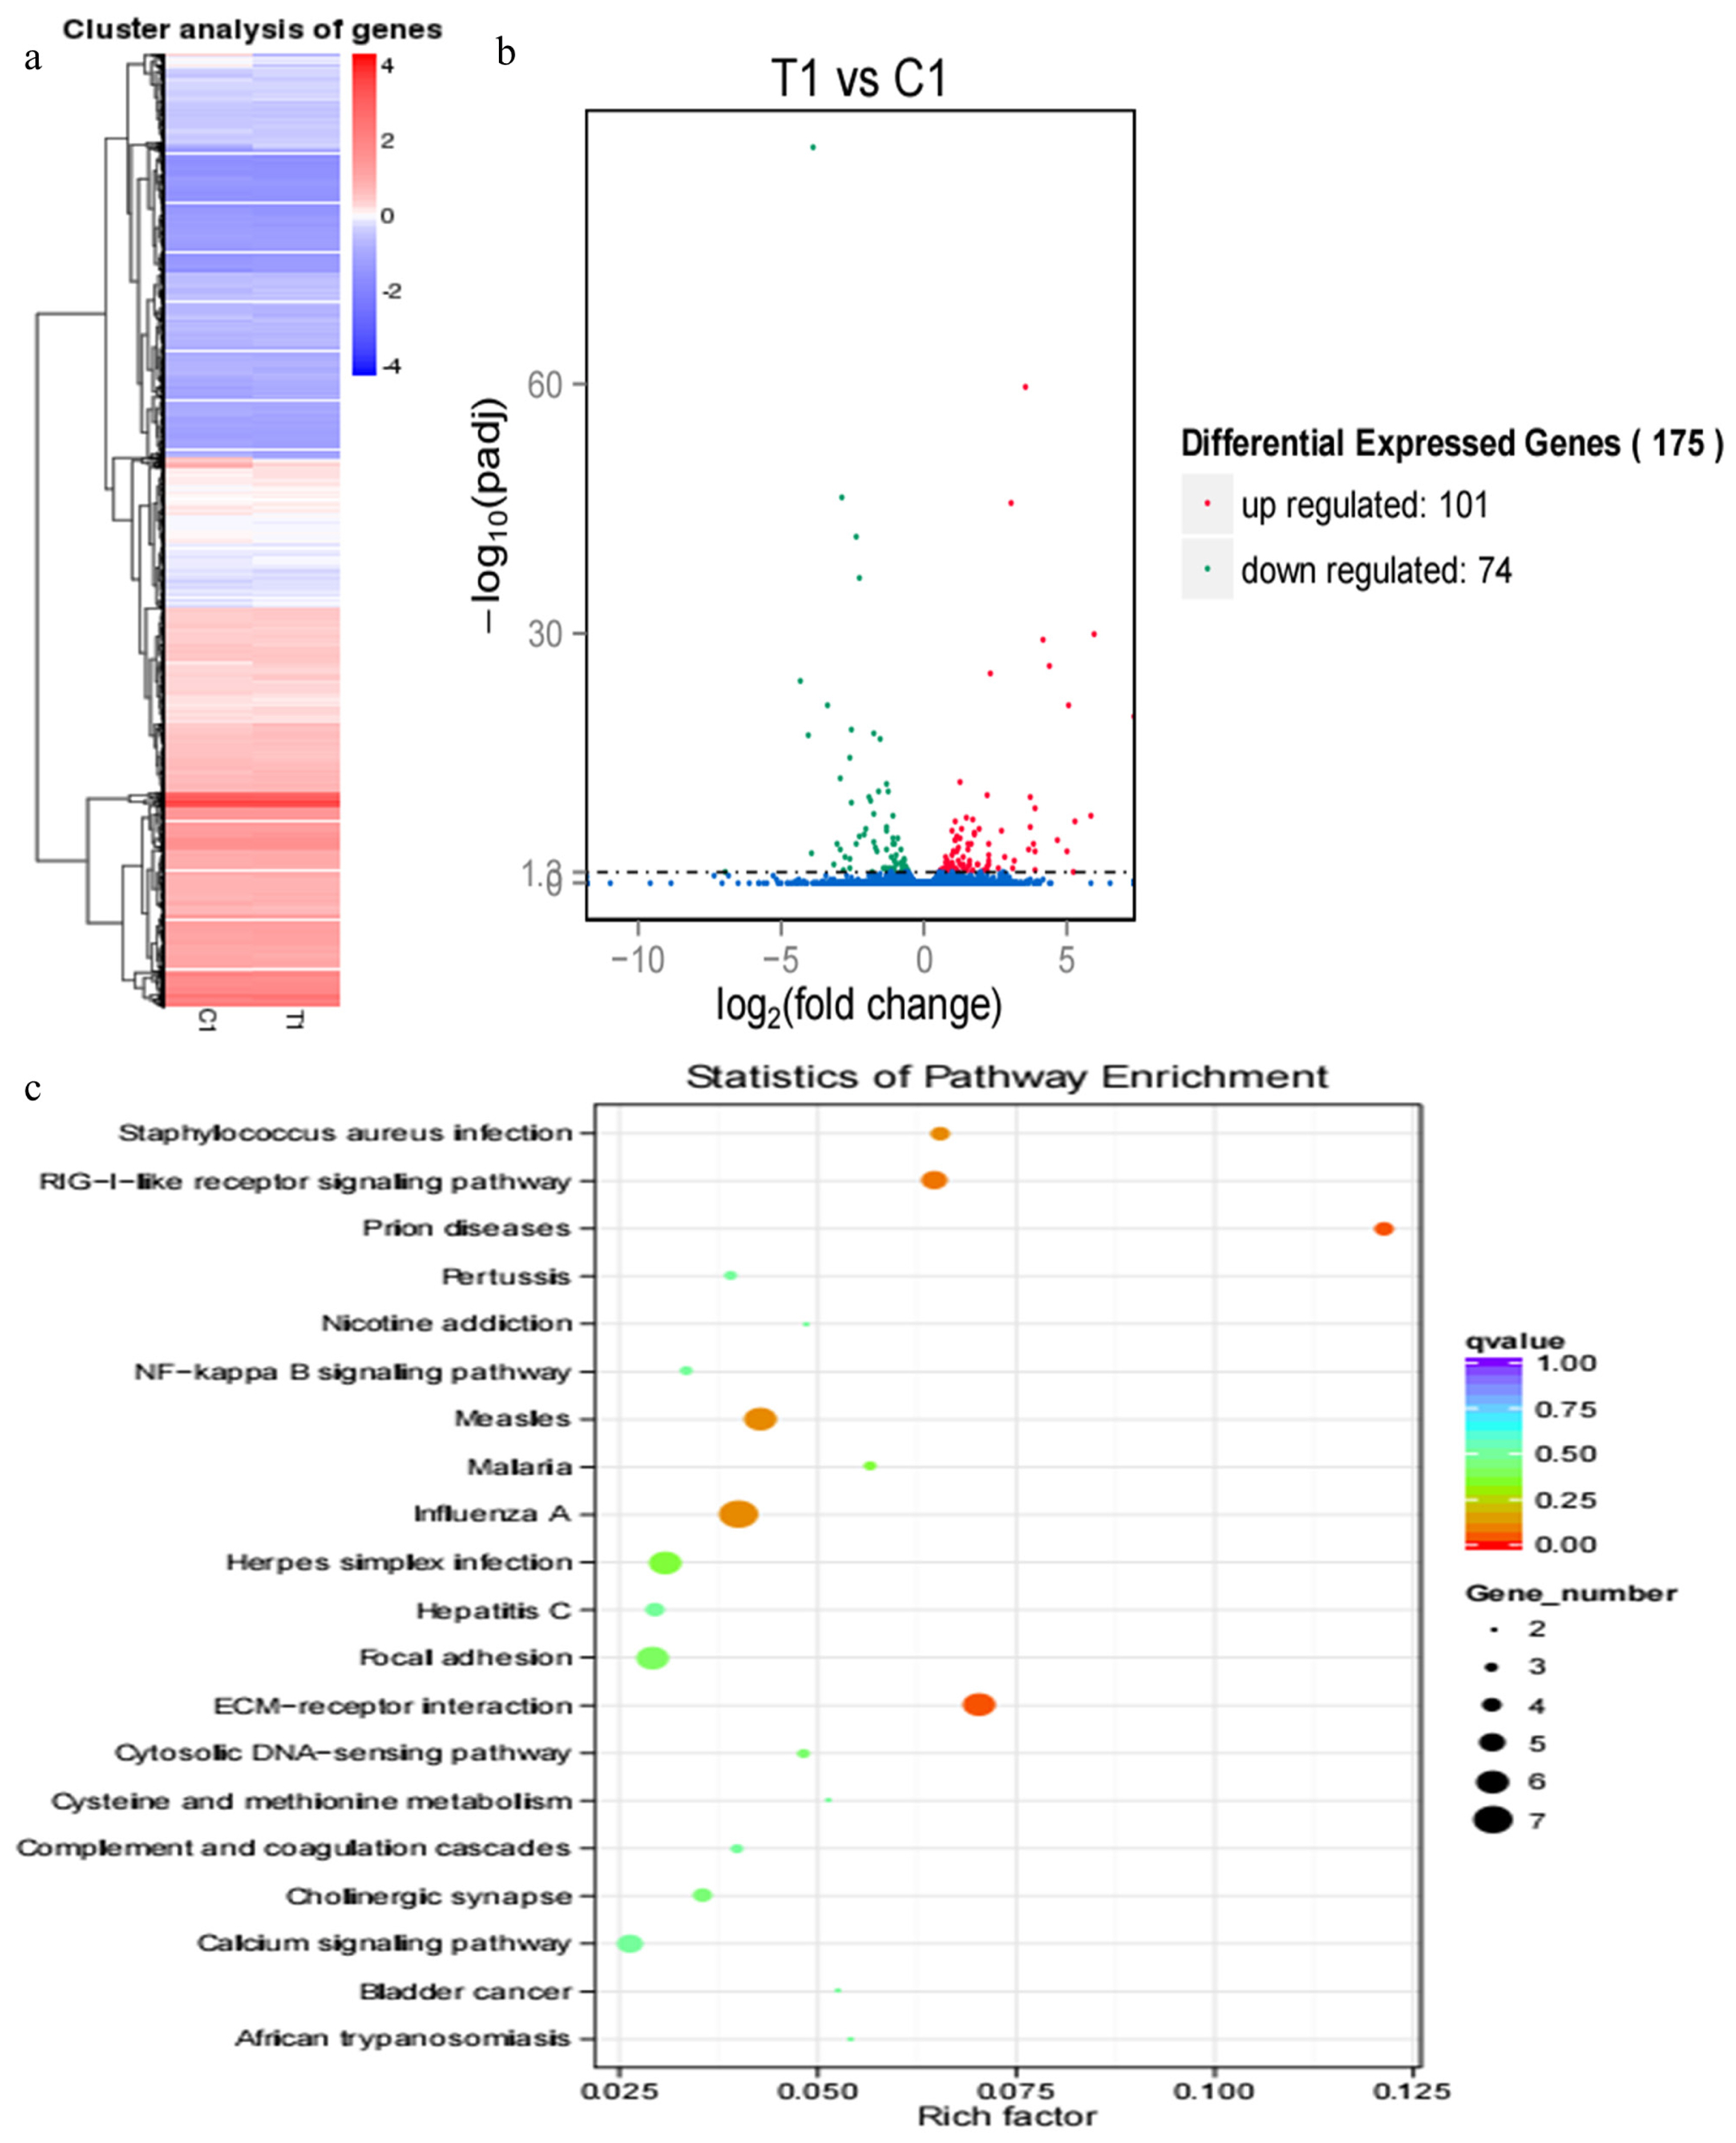 The study of blood transcriptome profiles in Holstein cows with